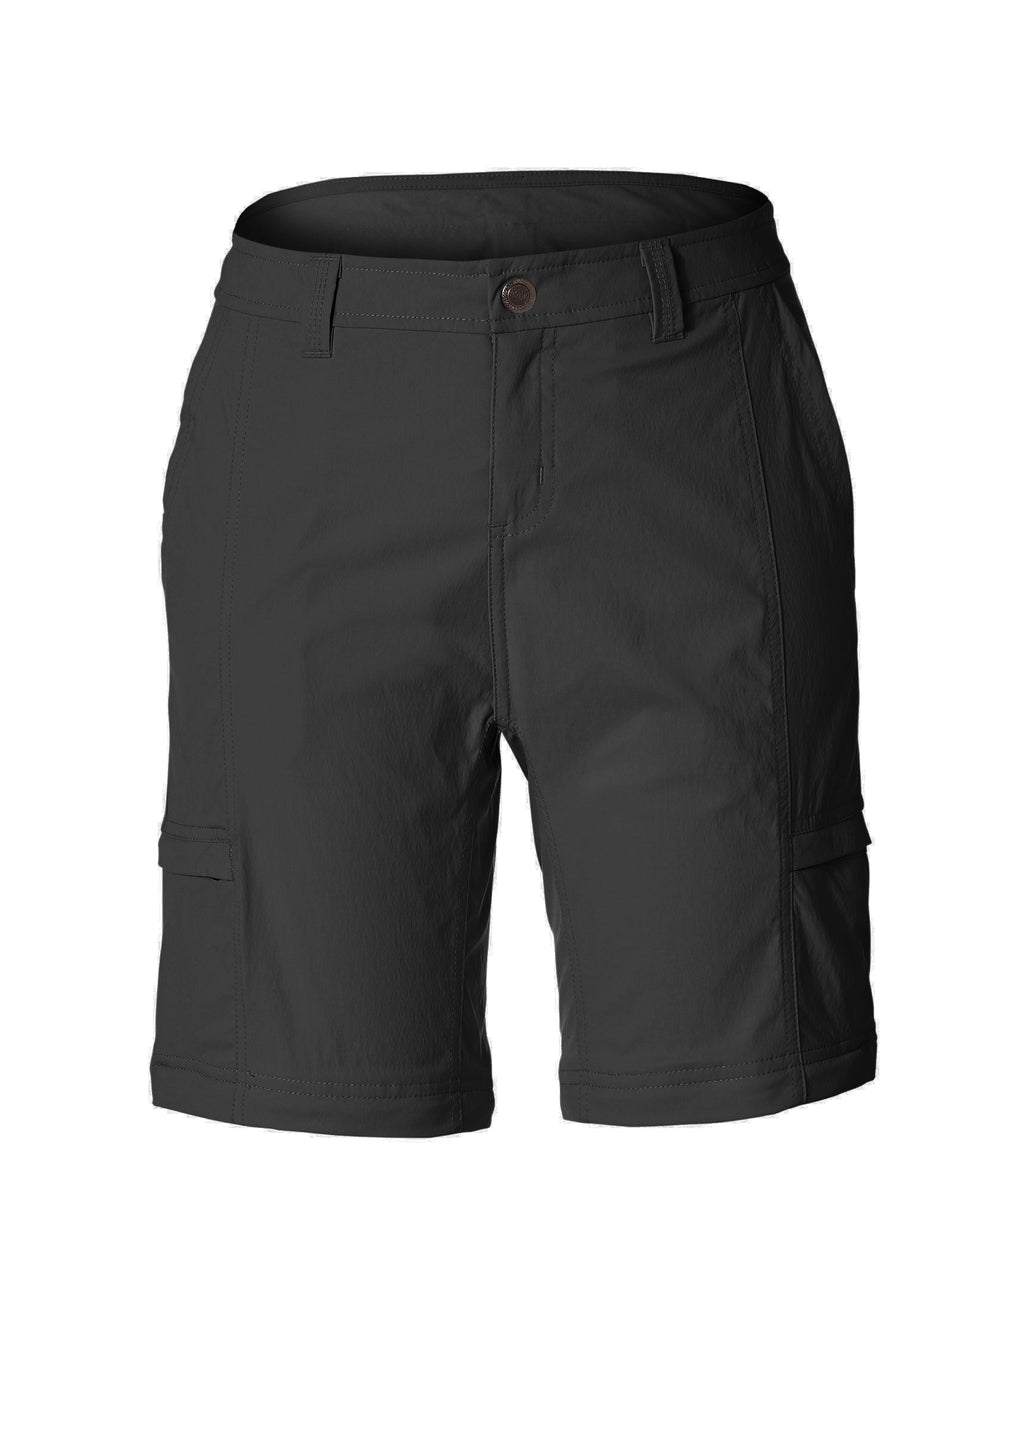 products/S19_34181_BUG_BARRIER_DISCOVERY_ZIPNGO_PANT_JETBLACK_037_SHORT_2190_eca455ae-1ba2-4361-9faf-b022252ccbab.jpg